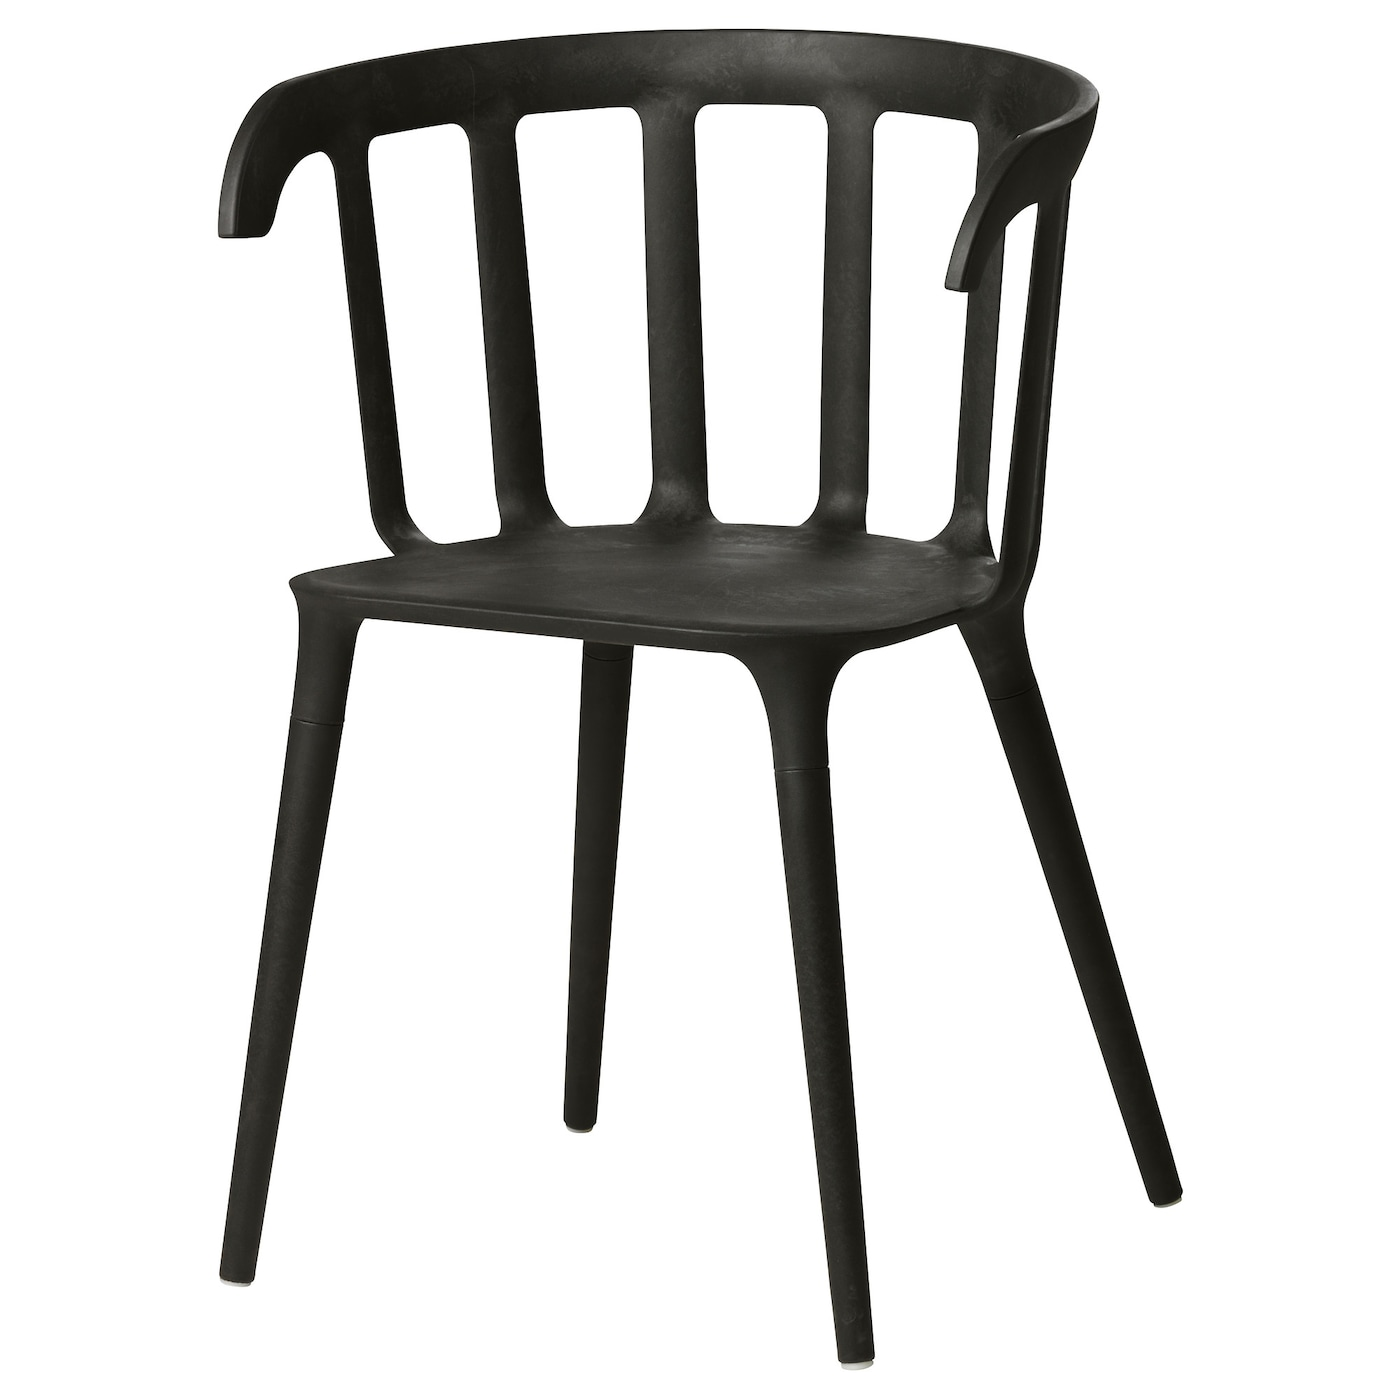 IKEA IKEA PS 2012 chair with armrests You sit comfortably thanks to the armrests.